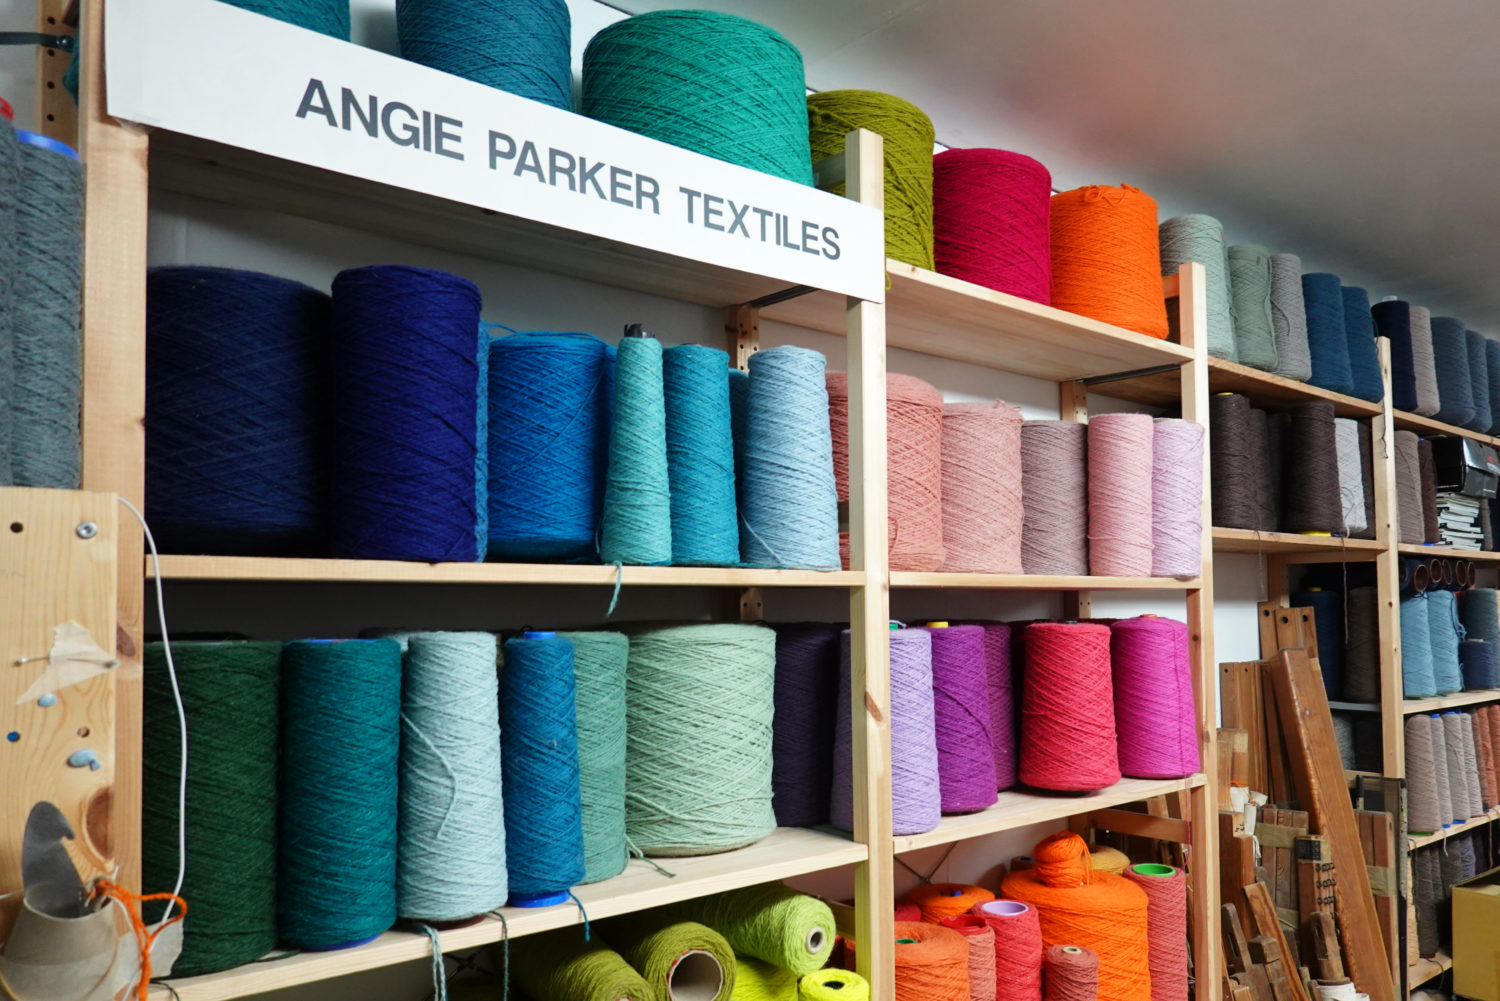 A Day with Angie Parker Textiles